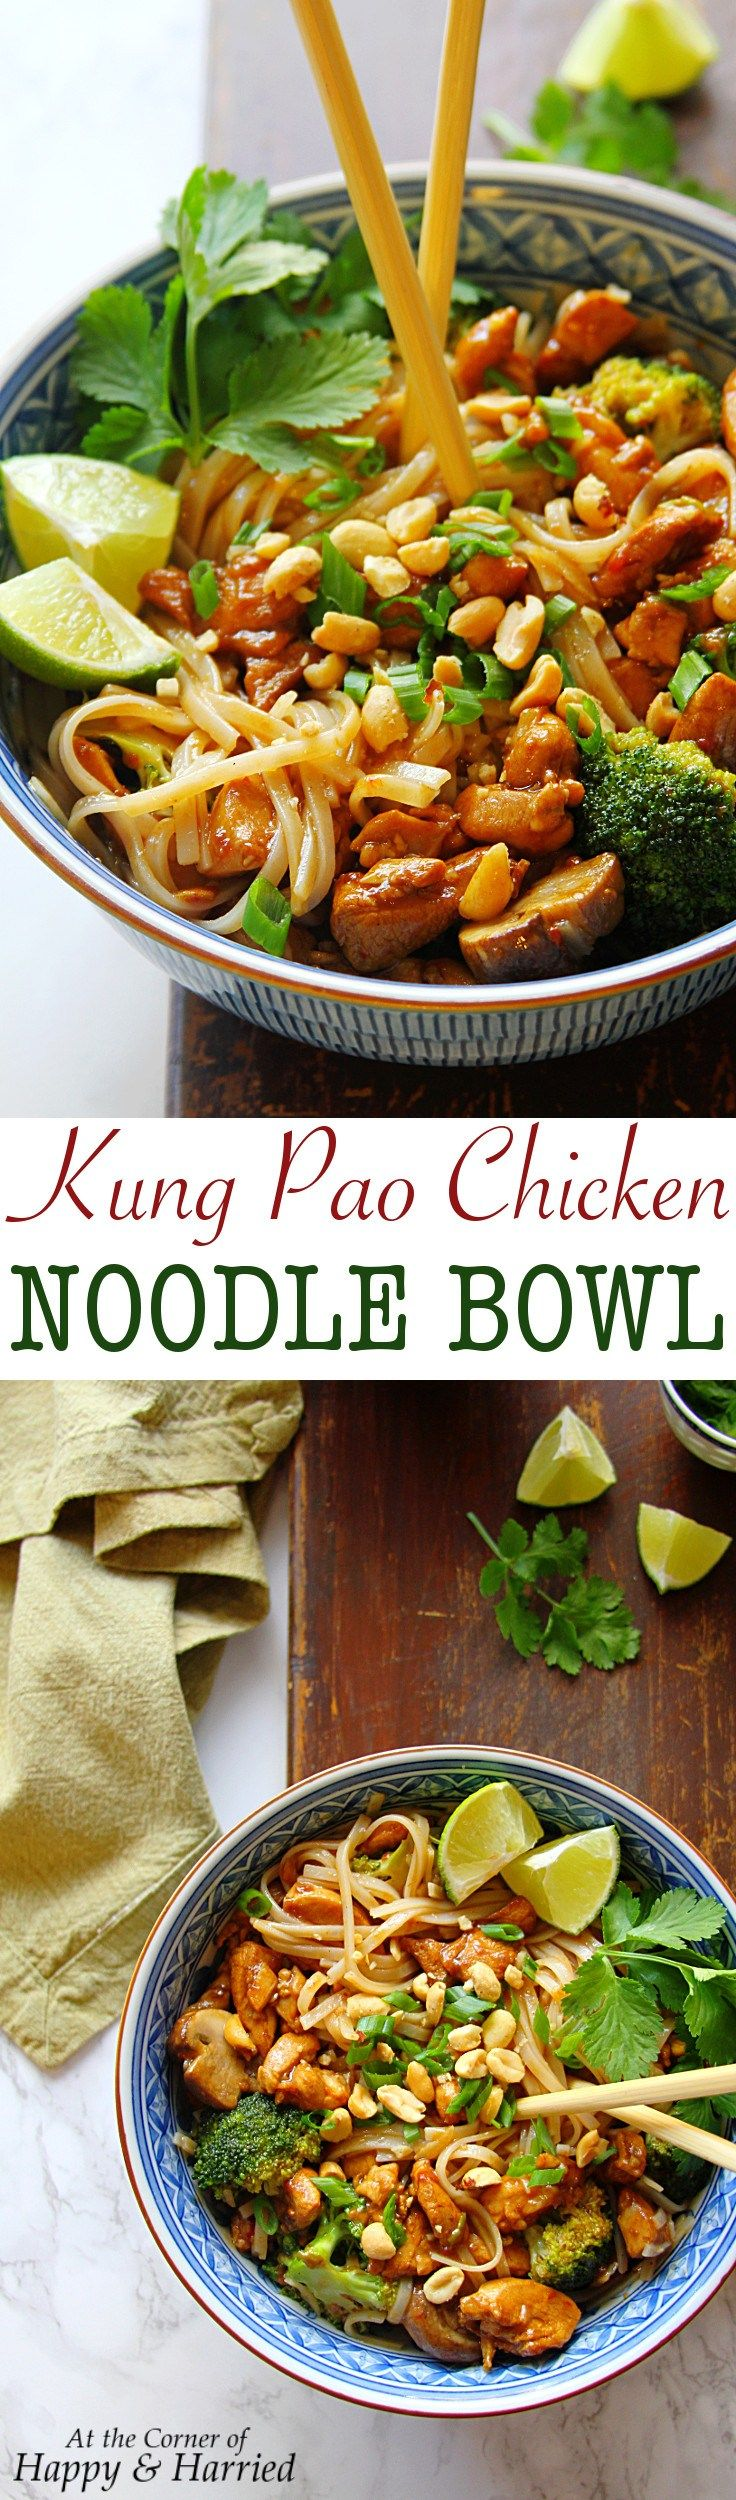 Kung Pao Chicken Noodle Bowl. This was a quick and tasty supper, tasted like wok box! Served over udon noodles.